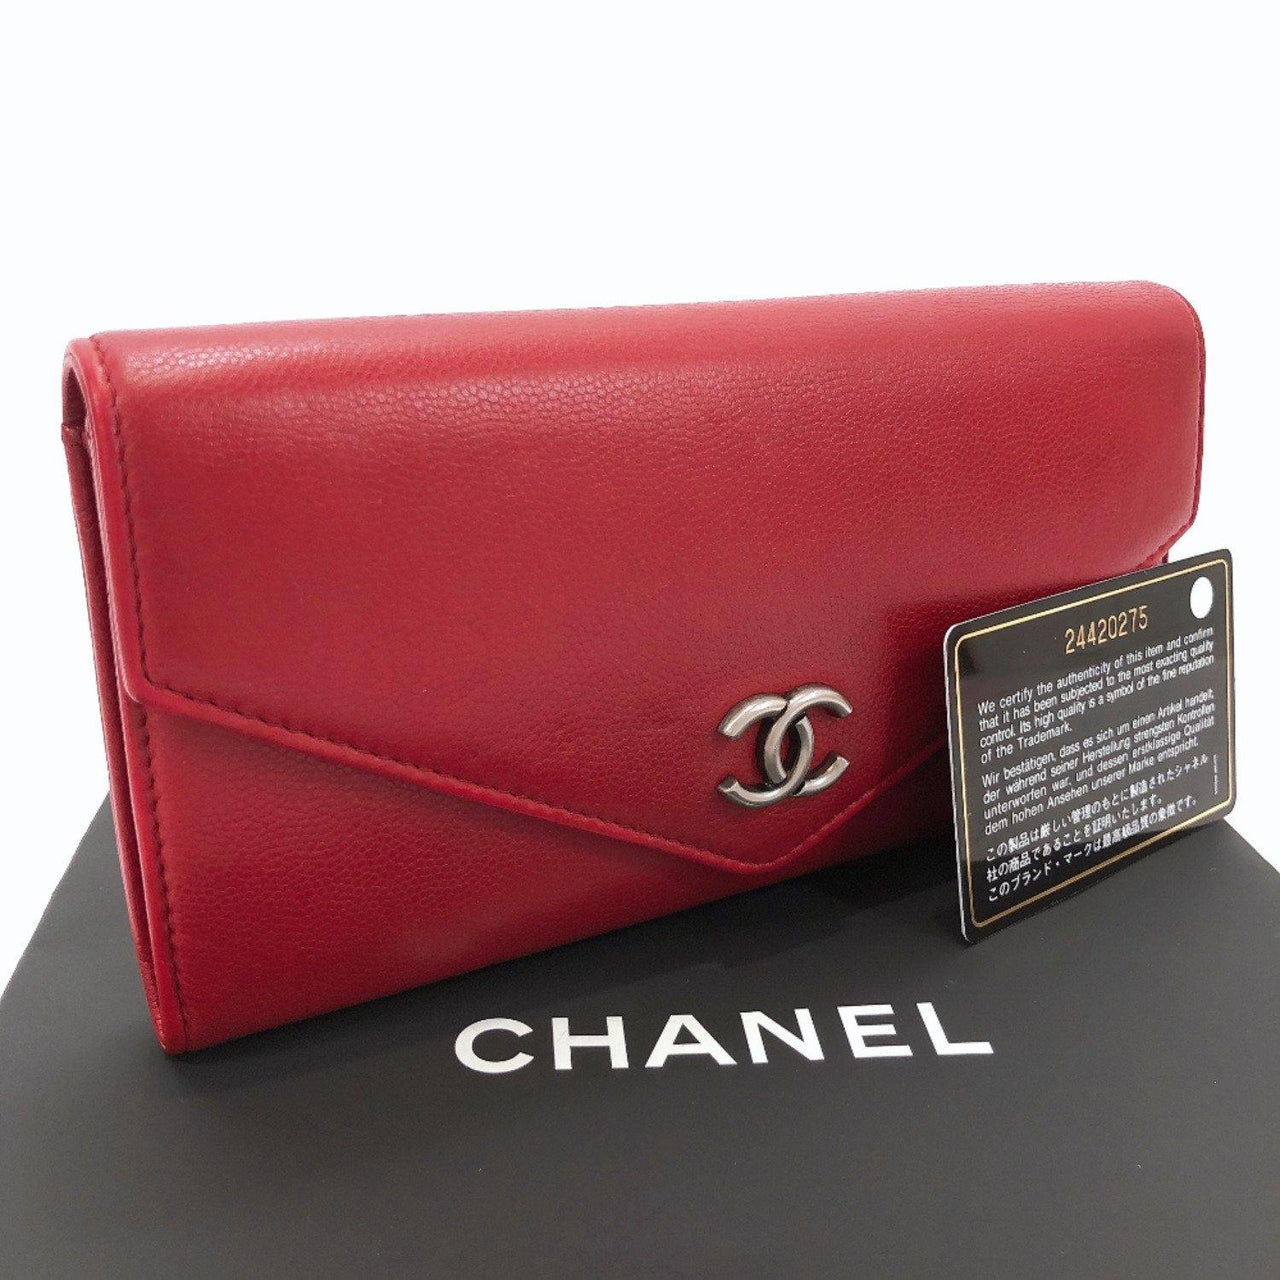 CHANEL purse leather Red Women Used